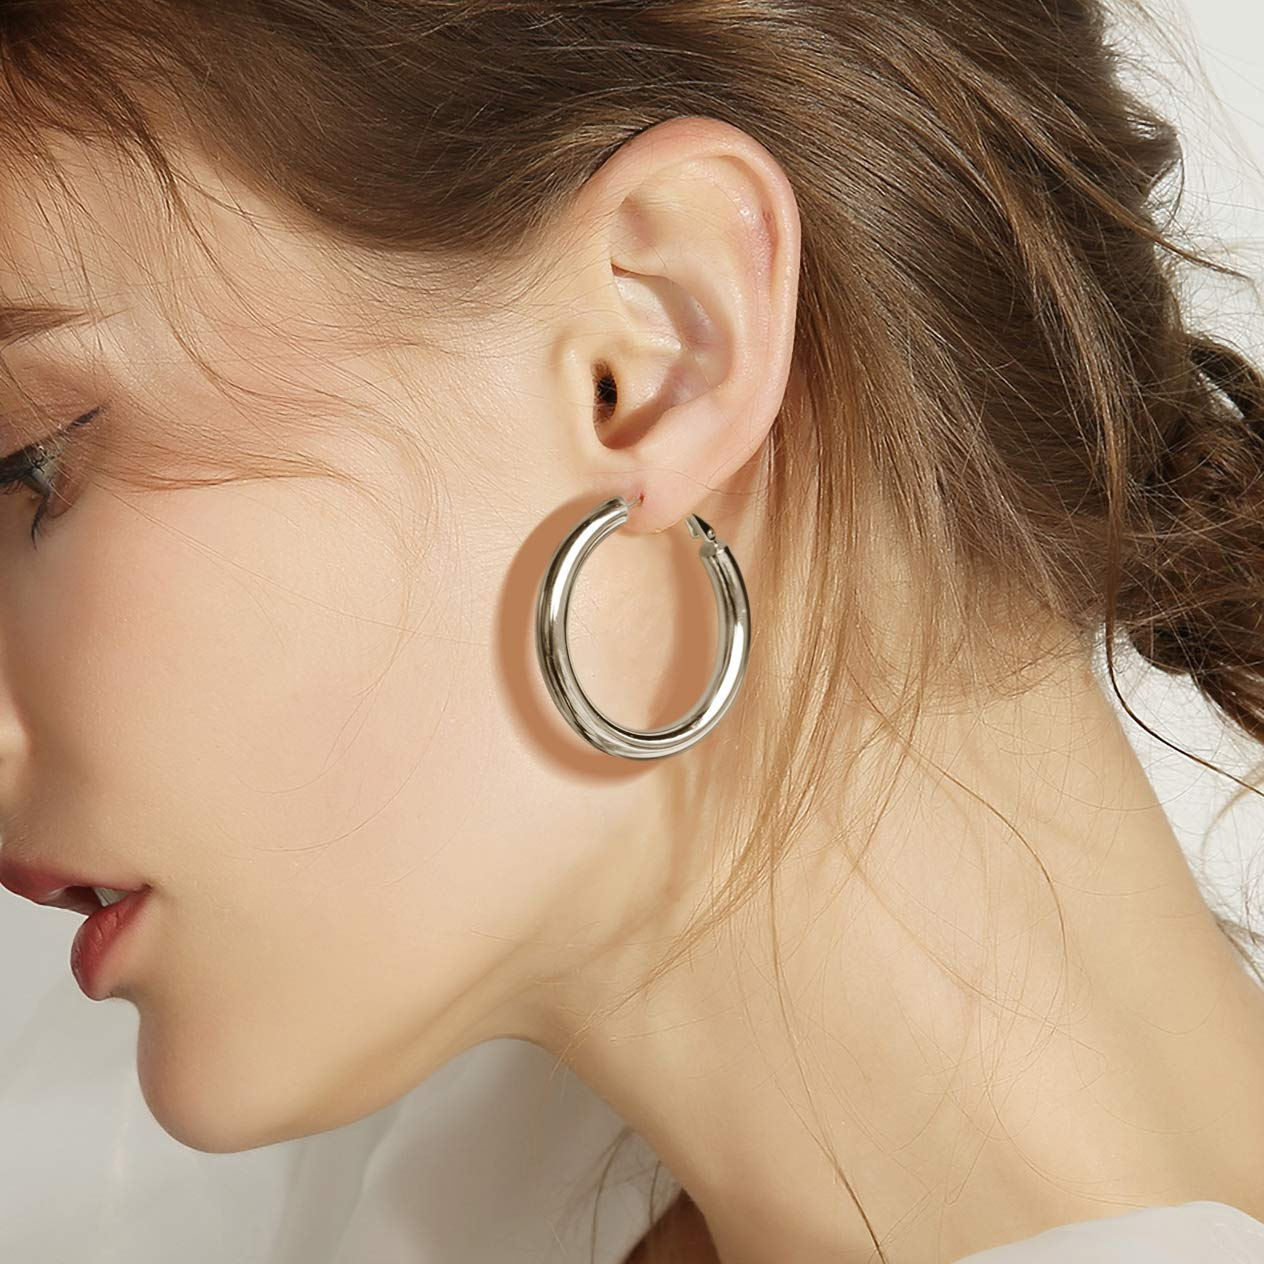 Hoop Earrings 18K Gold Plated 925 Sterling Silver Post 0.98in Thick Tube Very Lightweight Hoops for Women And Girl